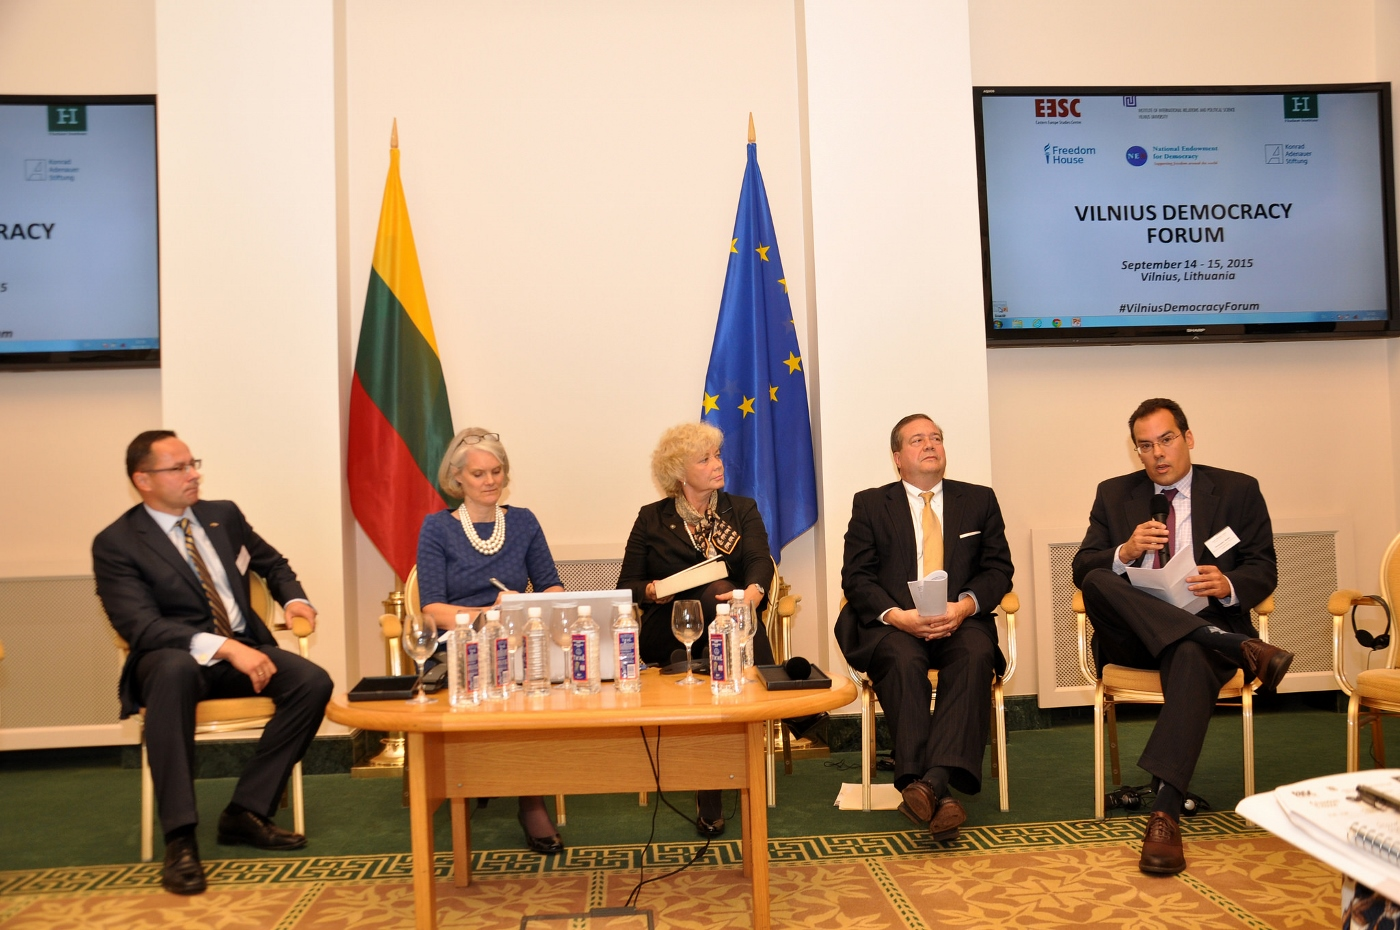 Christopher-Walker-Vilnius-Democracy-Forum-2015-Panel